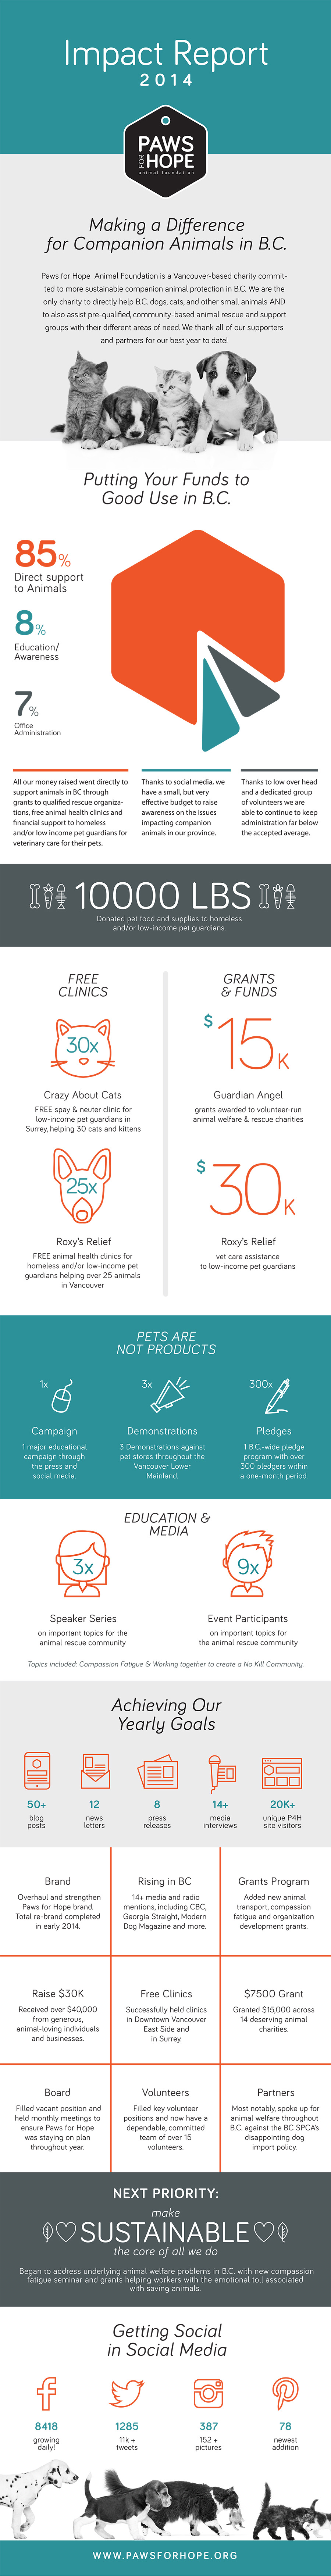 2014 Impart Report for Pet Welfare Non-Proft Paws for Hope | www.alicia-carvalho.com